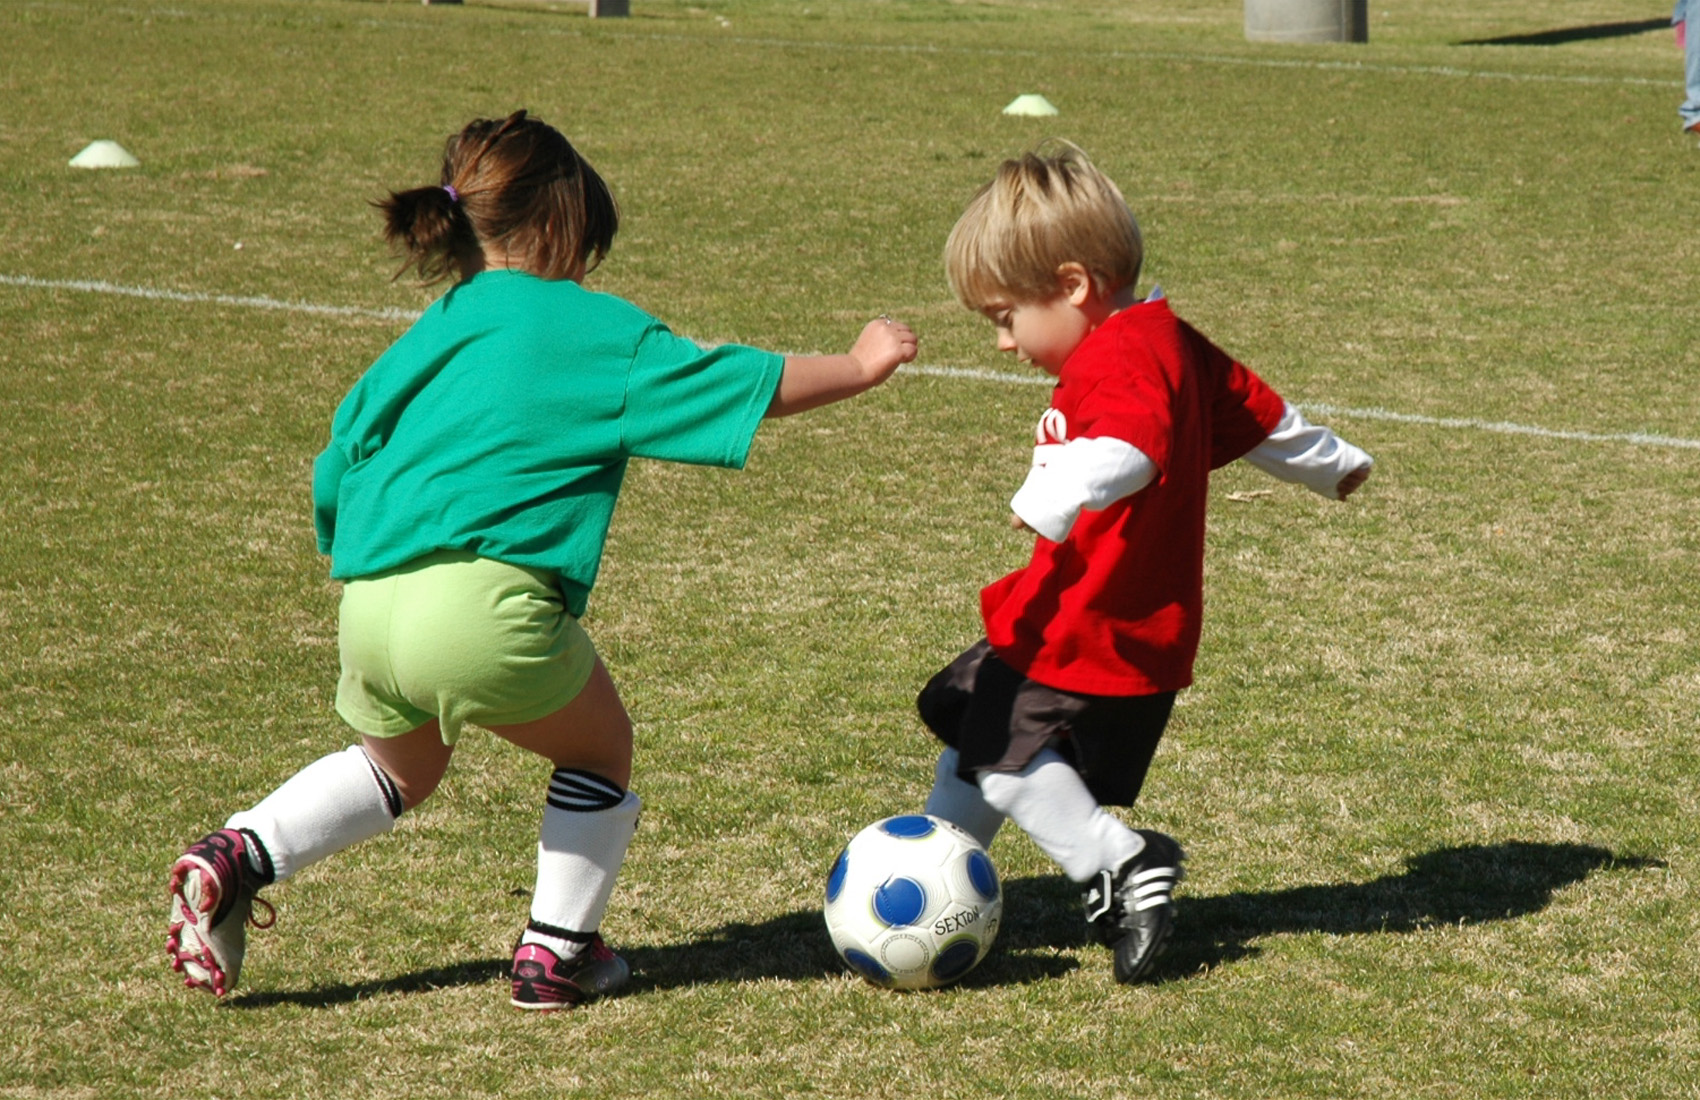 Kids playing soccer.jpg